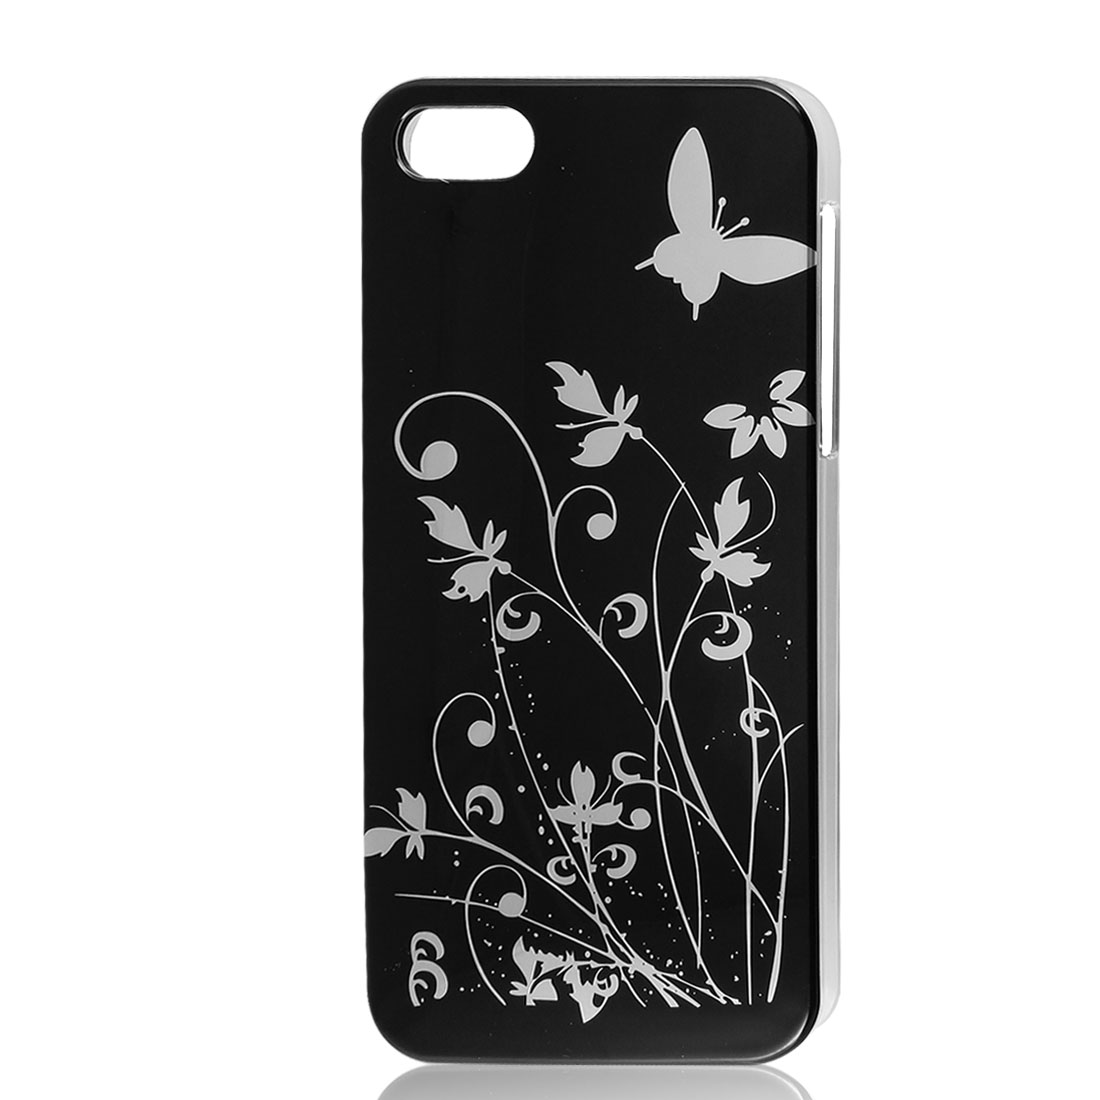 Flower Butterfly Design Black Hard Back Case Cover for iPhone 5 5G 5th